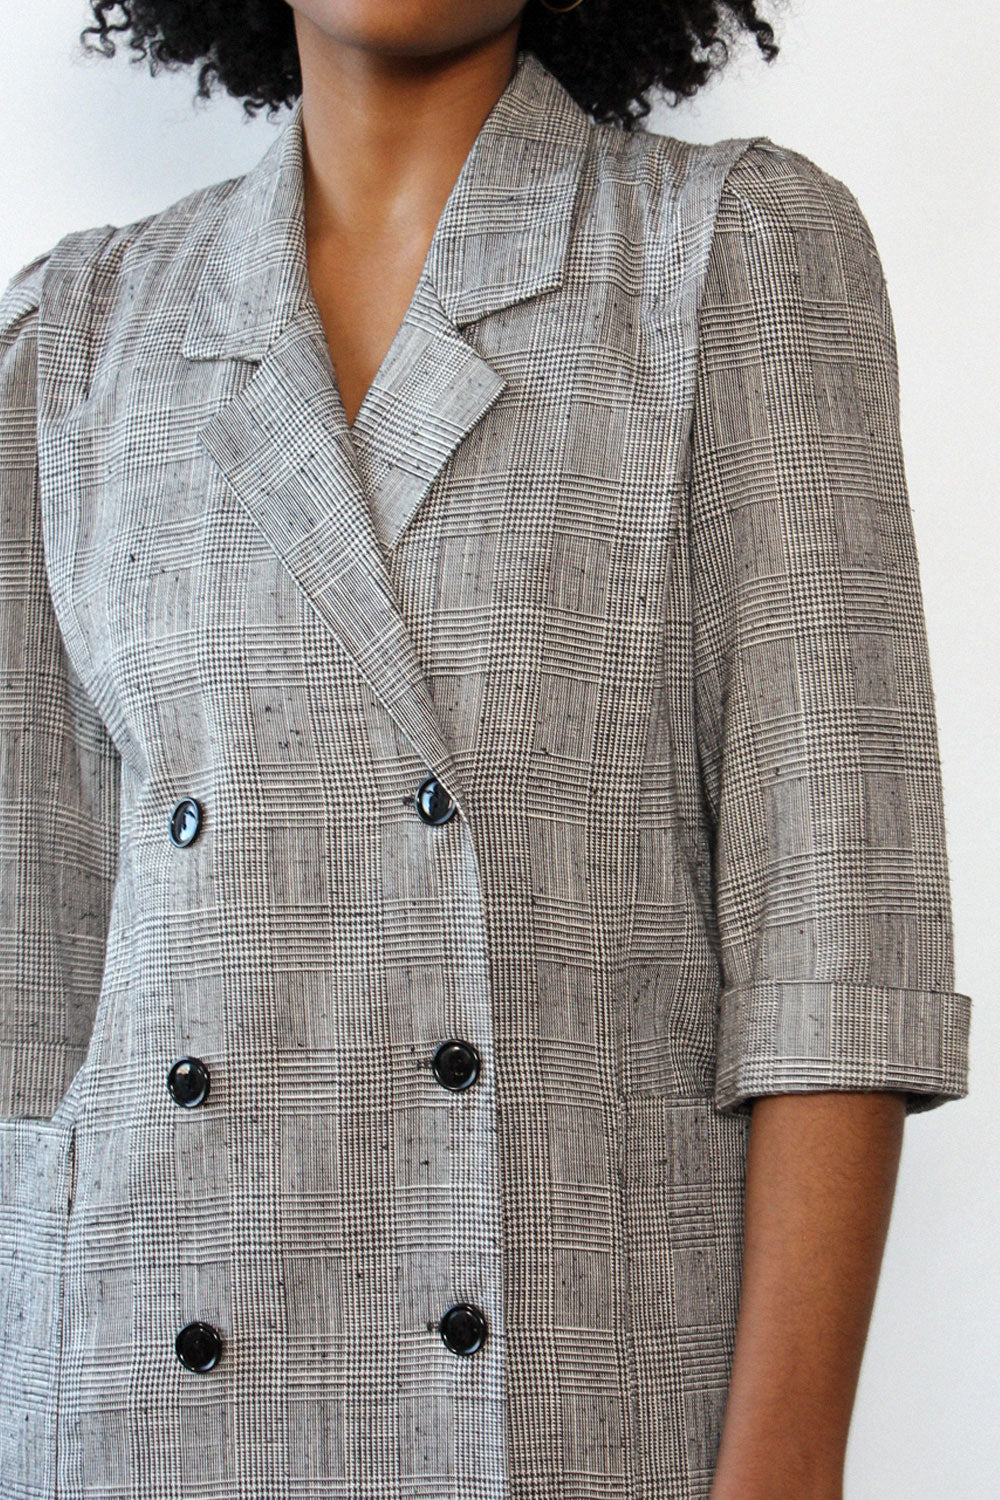 Glen Plaid Dress/Duster S/M